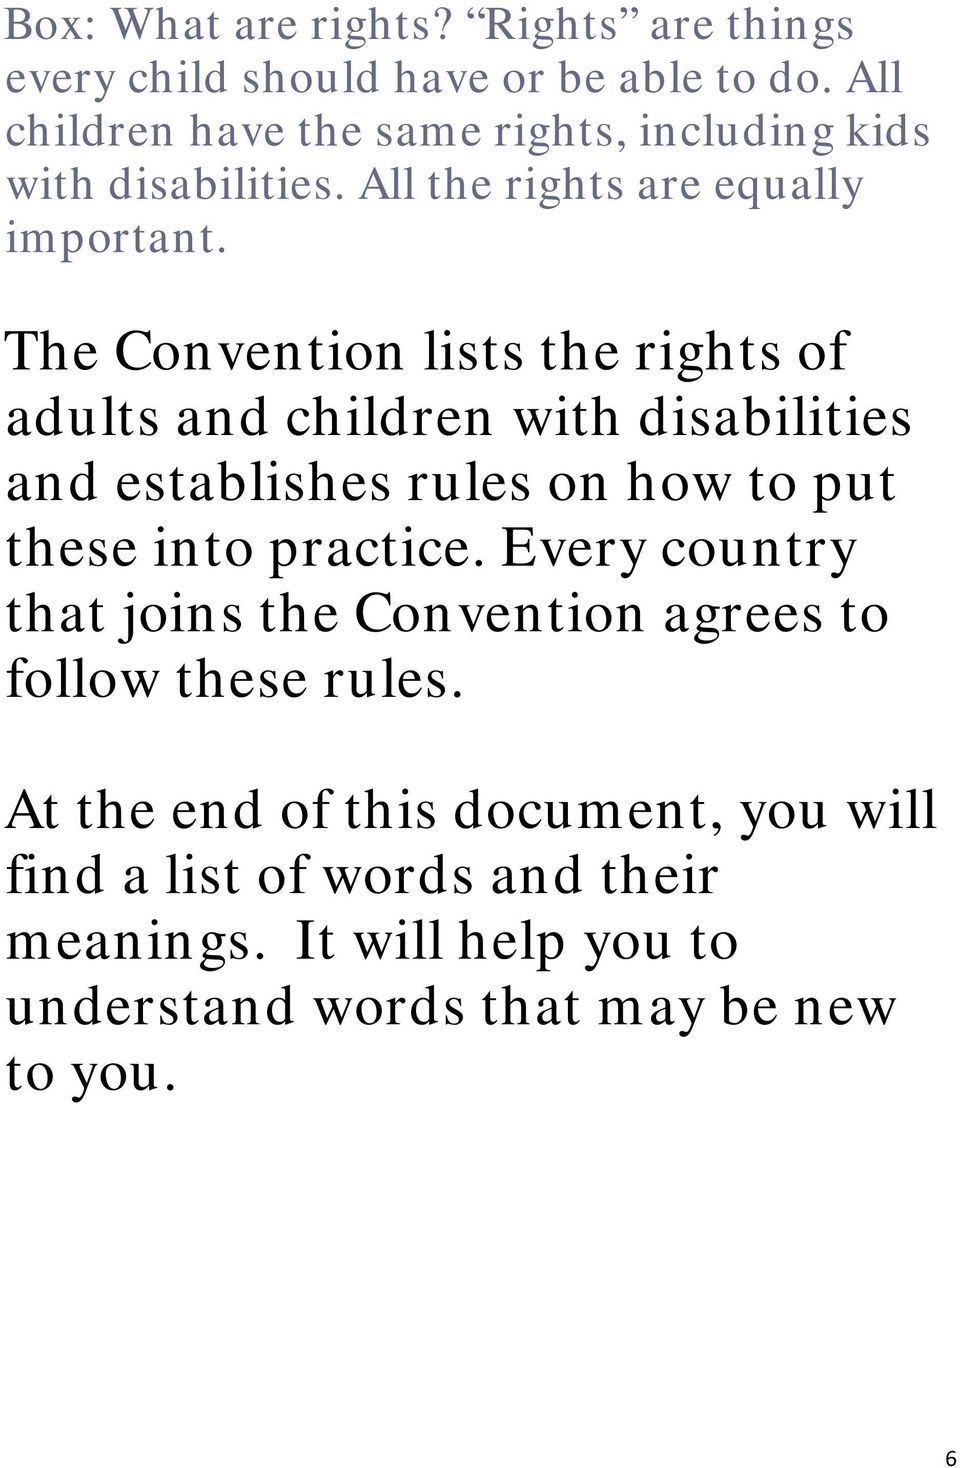 The Convention lists the rights of adults and children with disabilities and establishes rules on how to put these into practice.